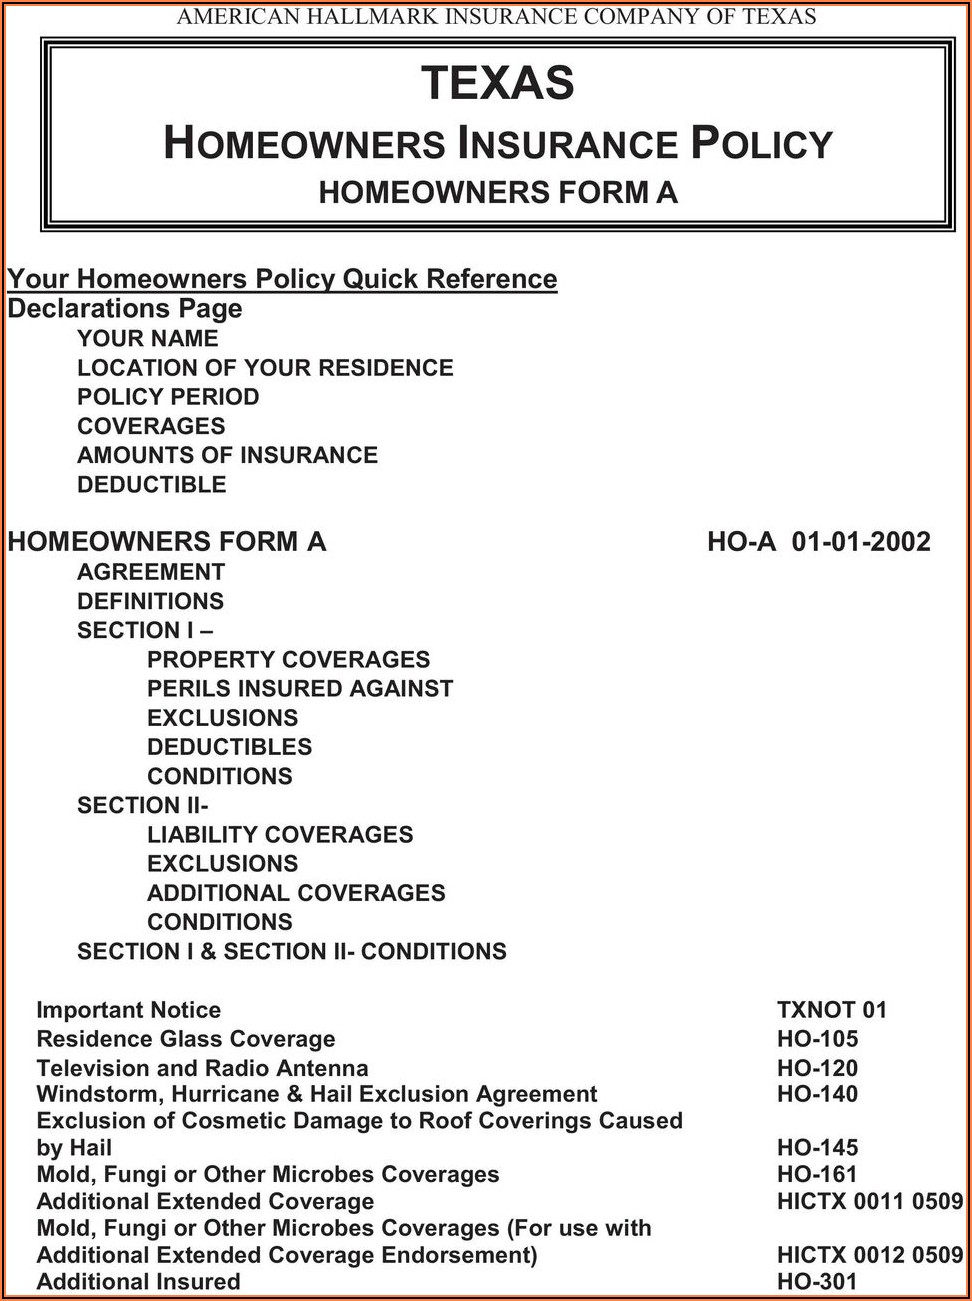 Homeowners Insurance Forms And Endorsements